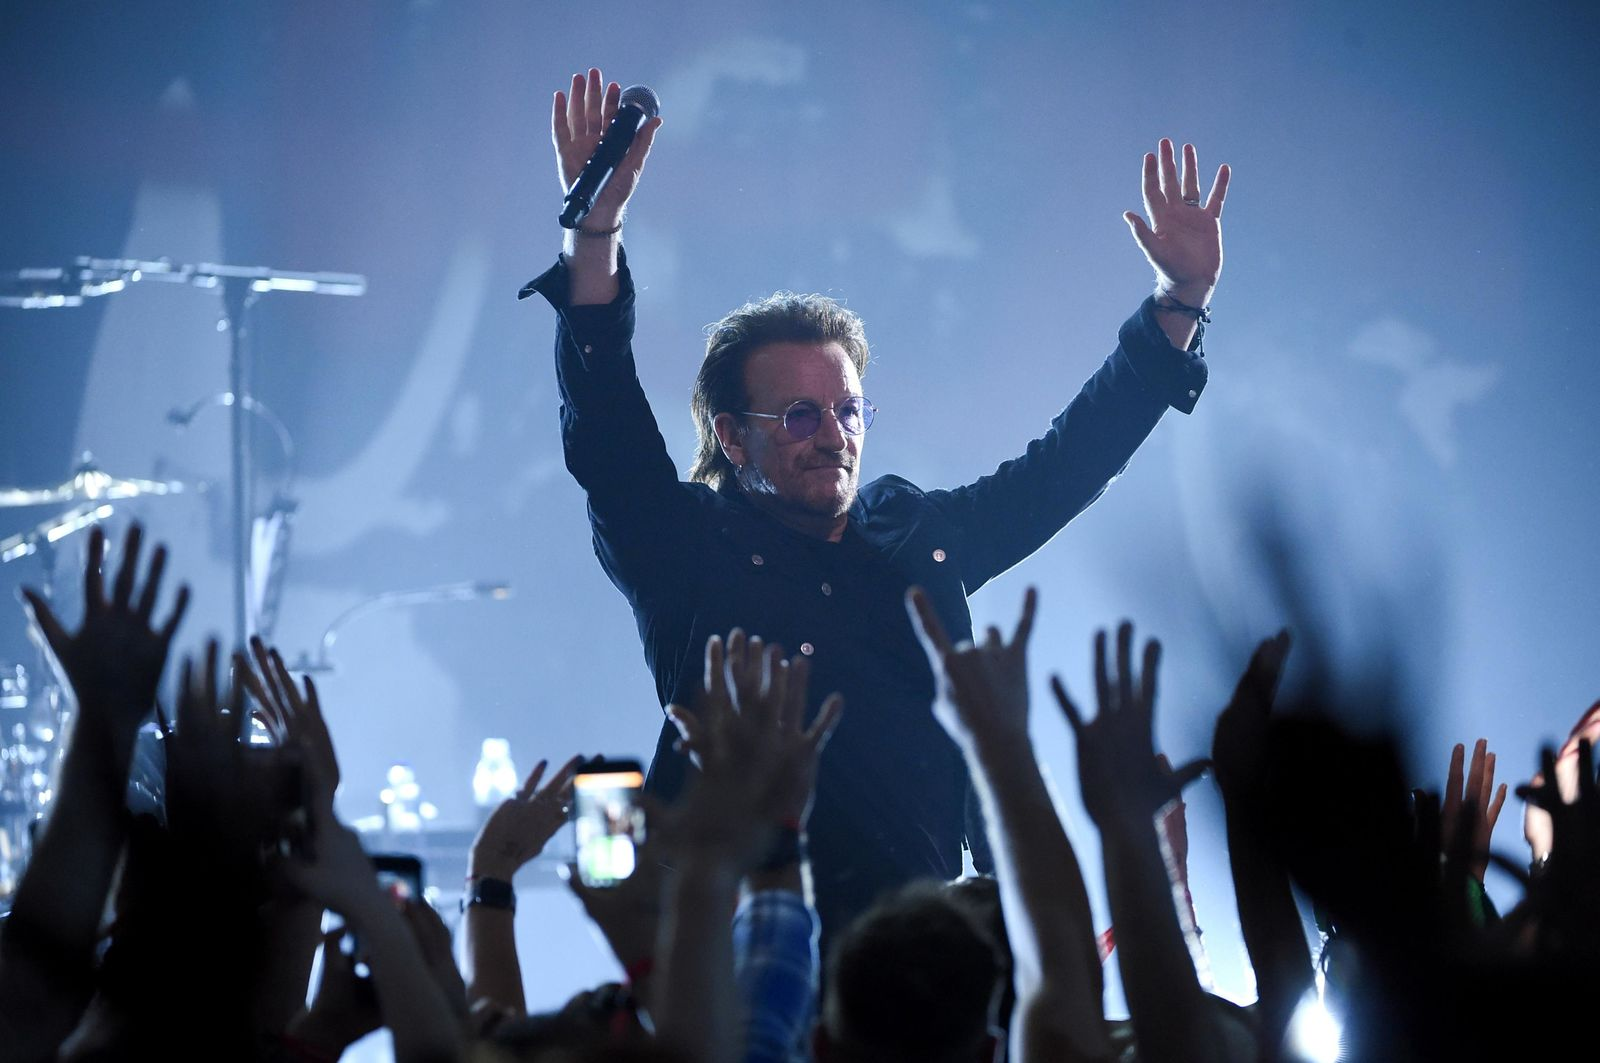 Singer Bono of U2 performs during a concert at the Apollo Theater hosted by SiriusXM on Monday, June 11, 2018, in New York. (Photo by Evan Agostini/Invision/AP